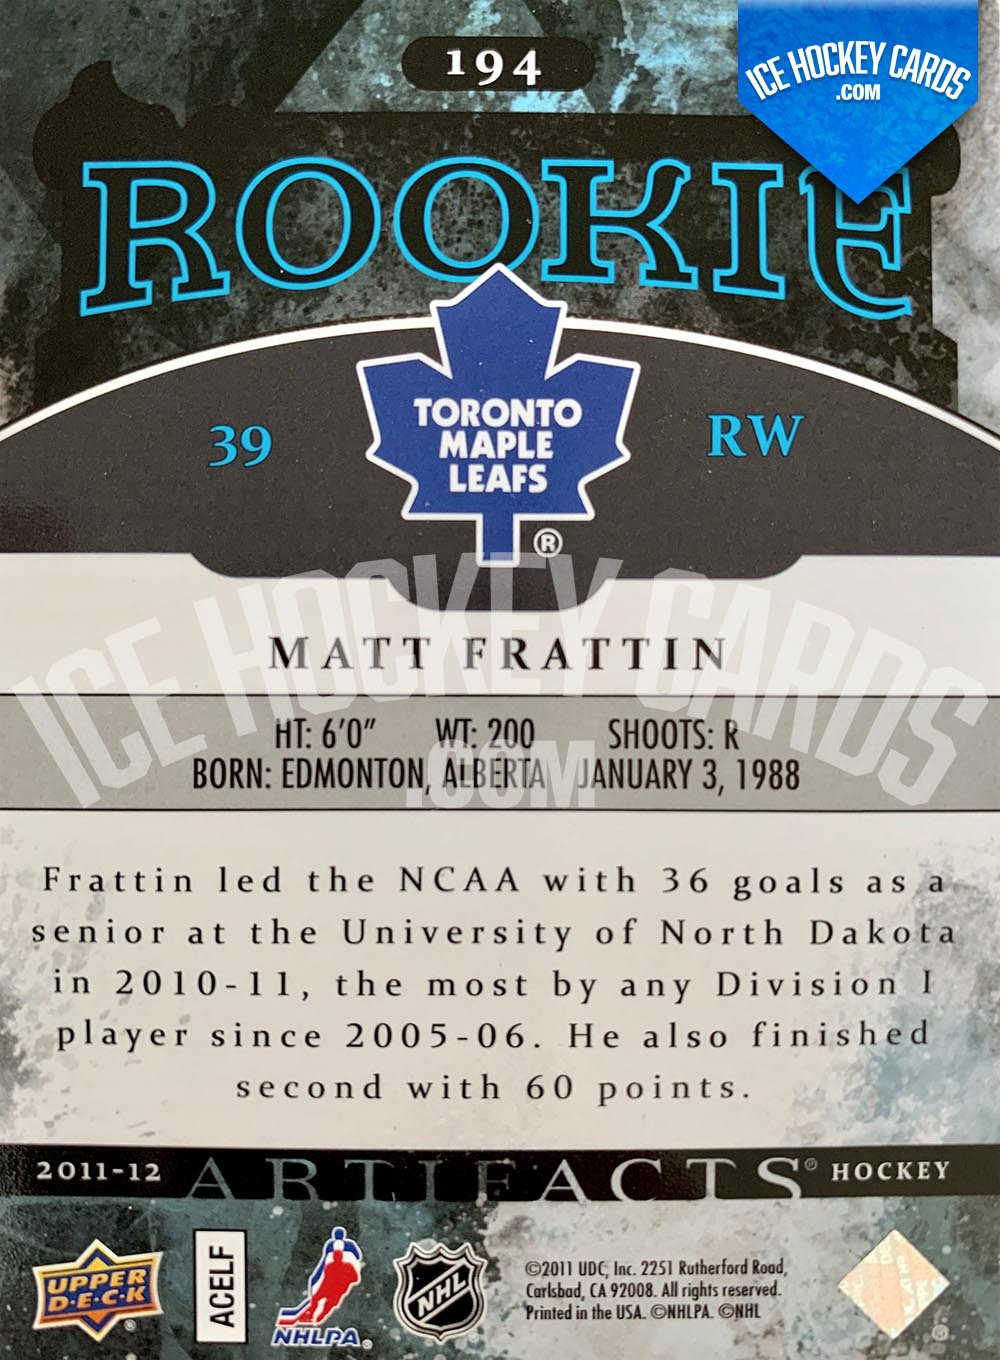 Upper Deck - Artifacts 2011-12 - Matt Frattin Rookie Card back